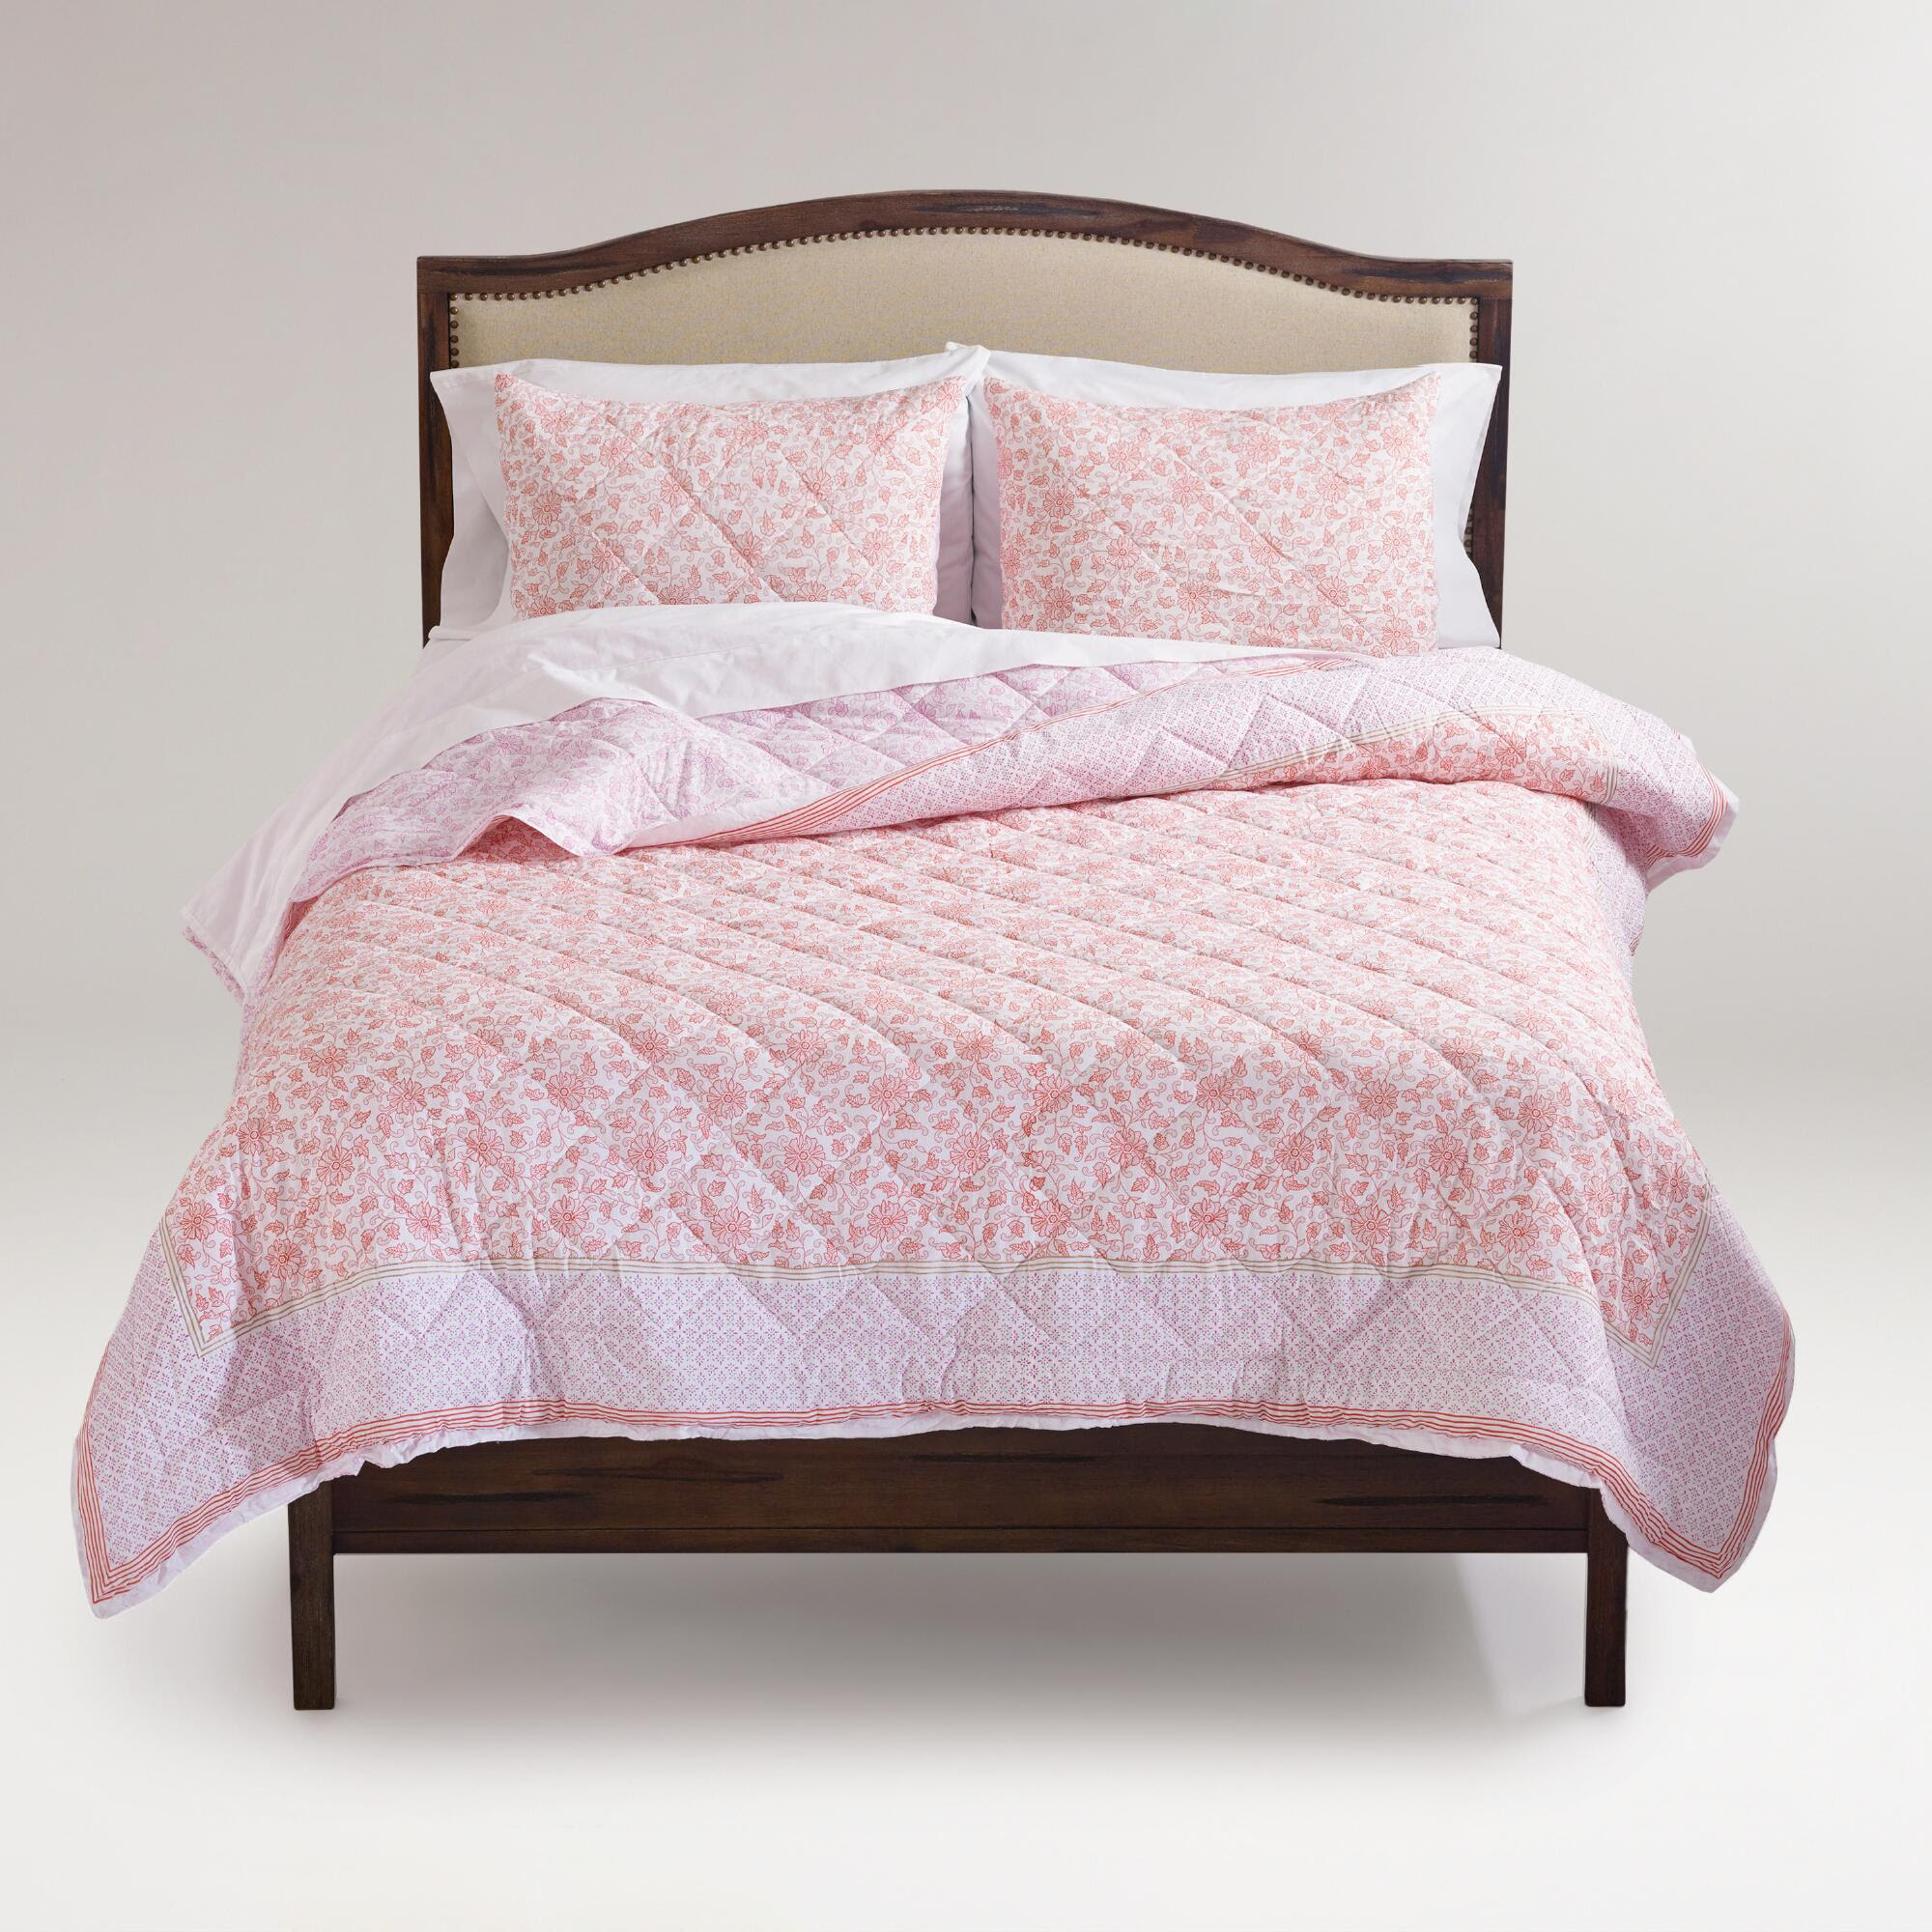 Bedding Collections-Bedroom-Bed and Bath-Home & Décor-worldmarket ...